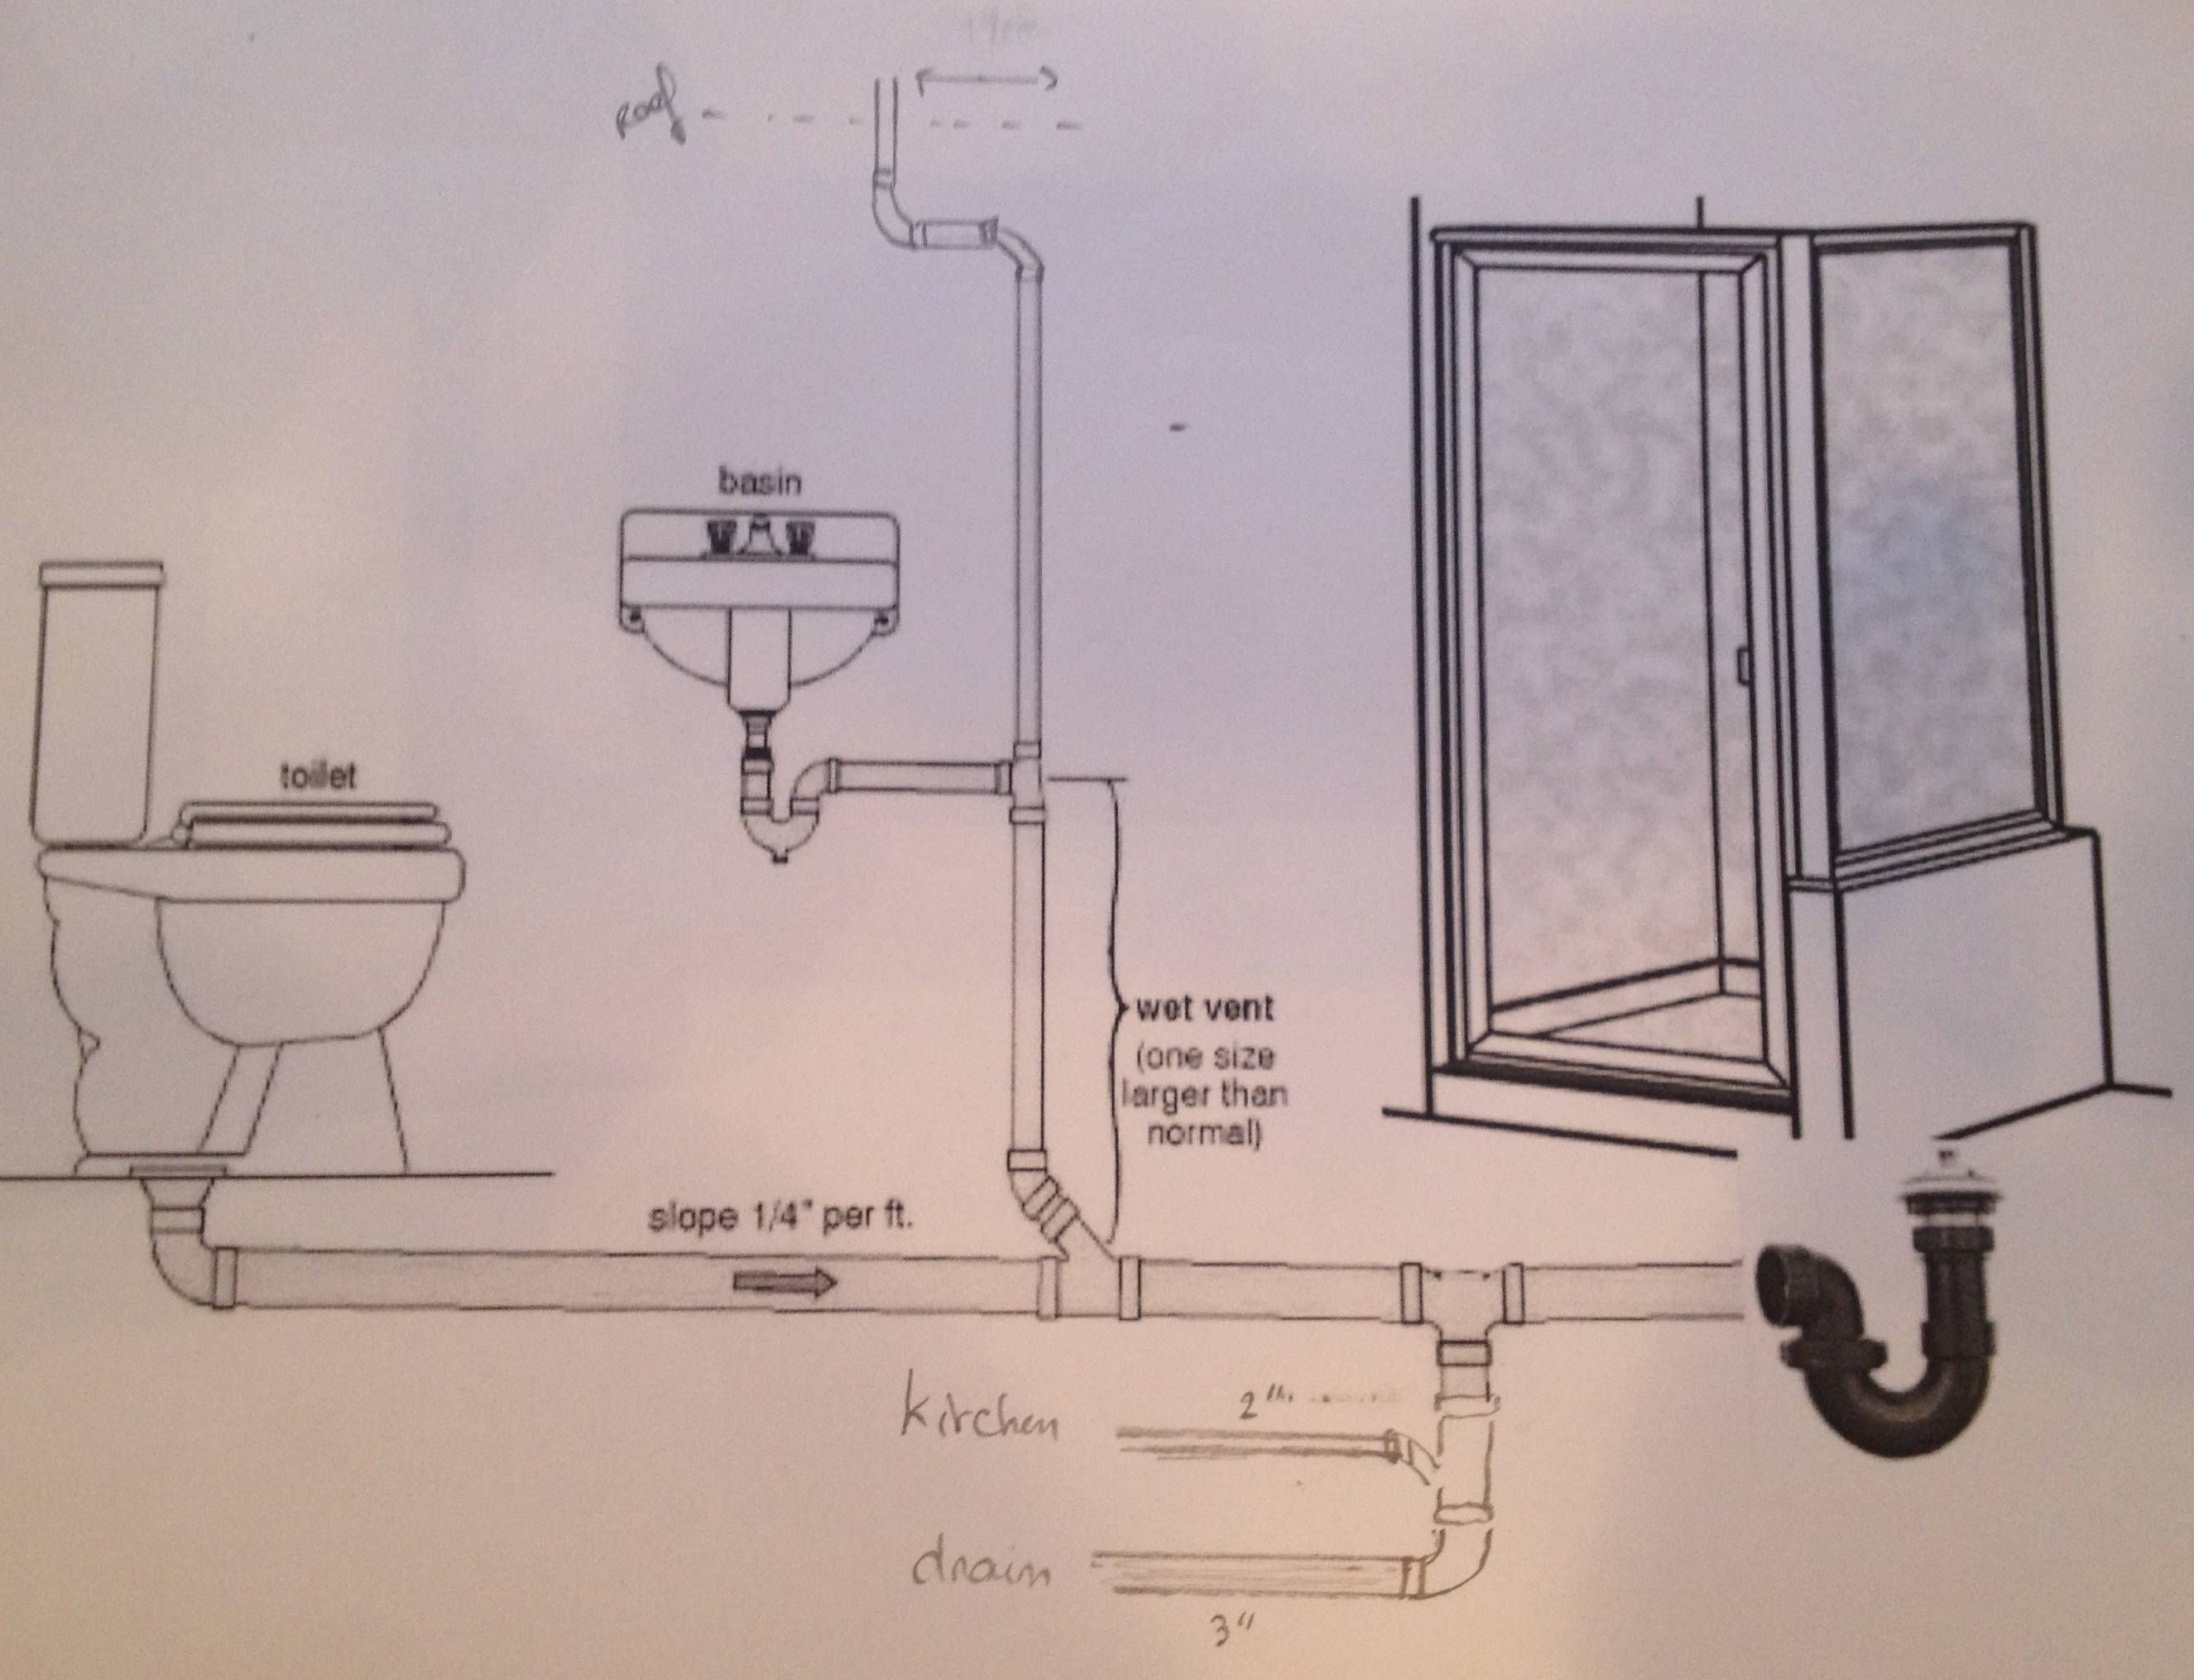 Stylish plumbing drain piping diagram for bathroom home for Plumbing schematic